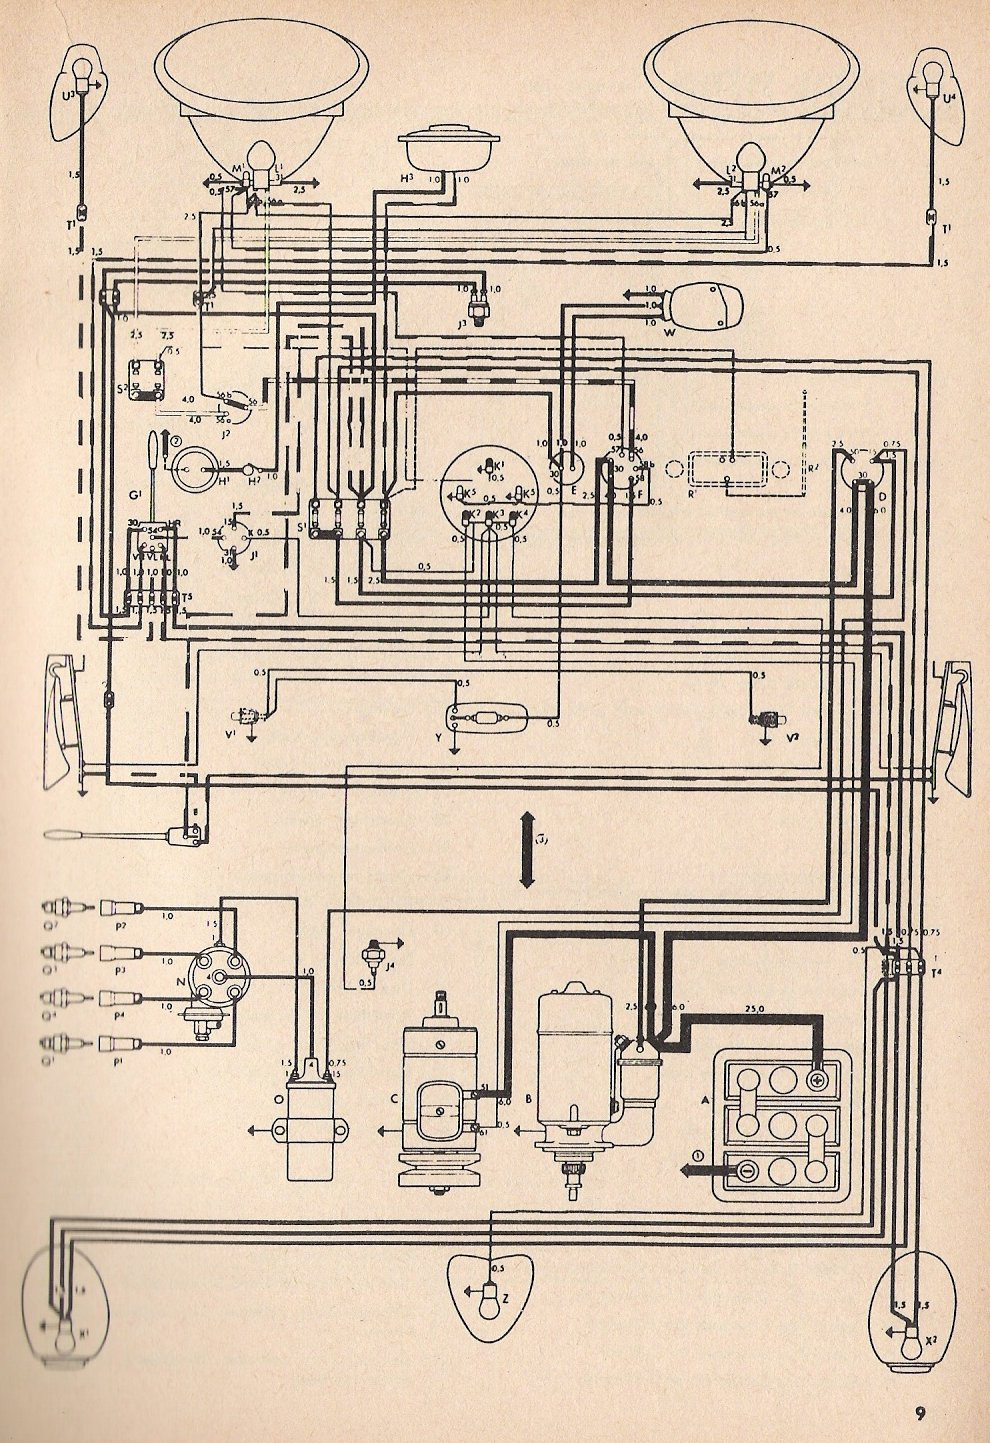 Vw Super Beetle Wiring Schematics Free Diagram For You 1975 Volkswagen Thesamba Com Type 1 Diagrams Rh 1972